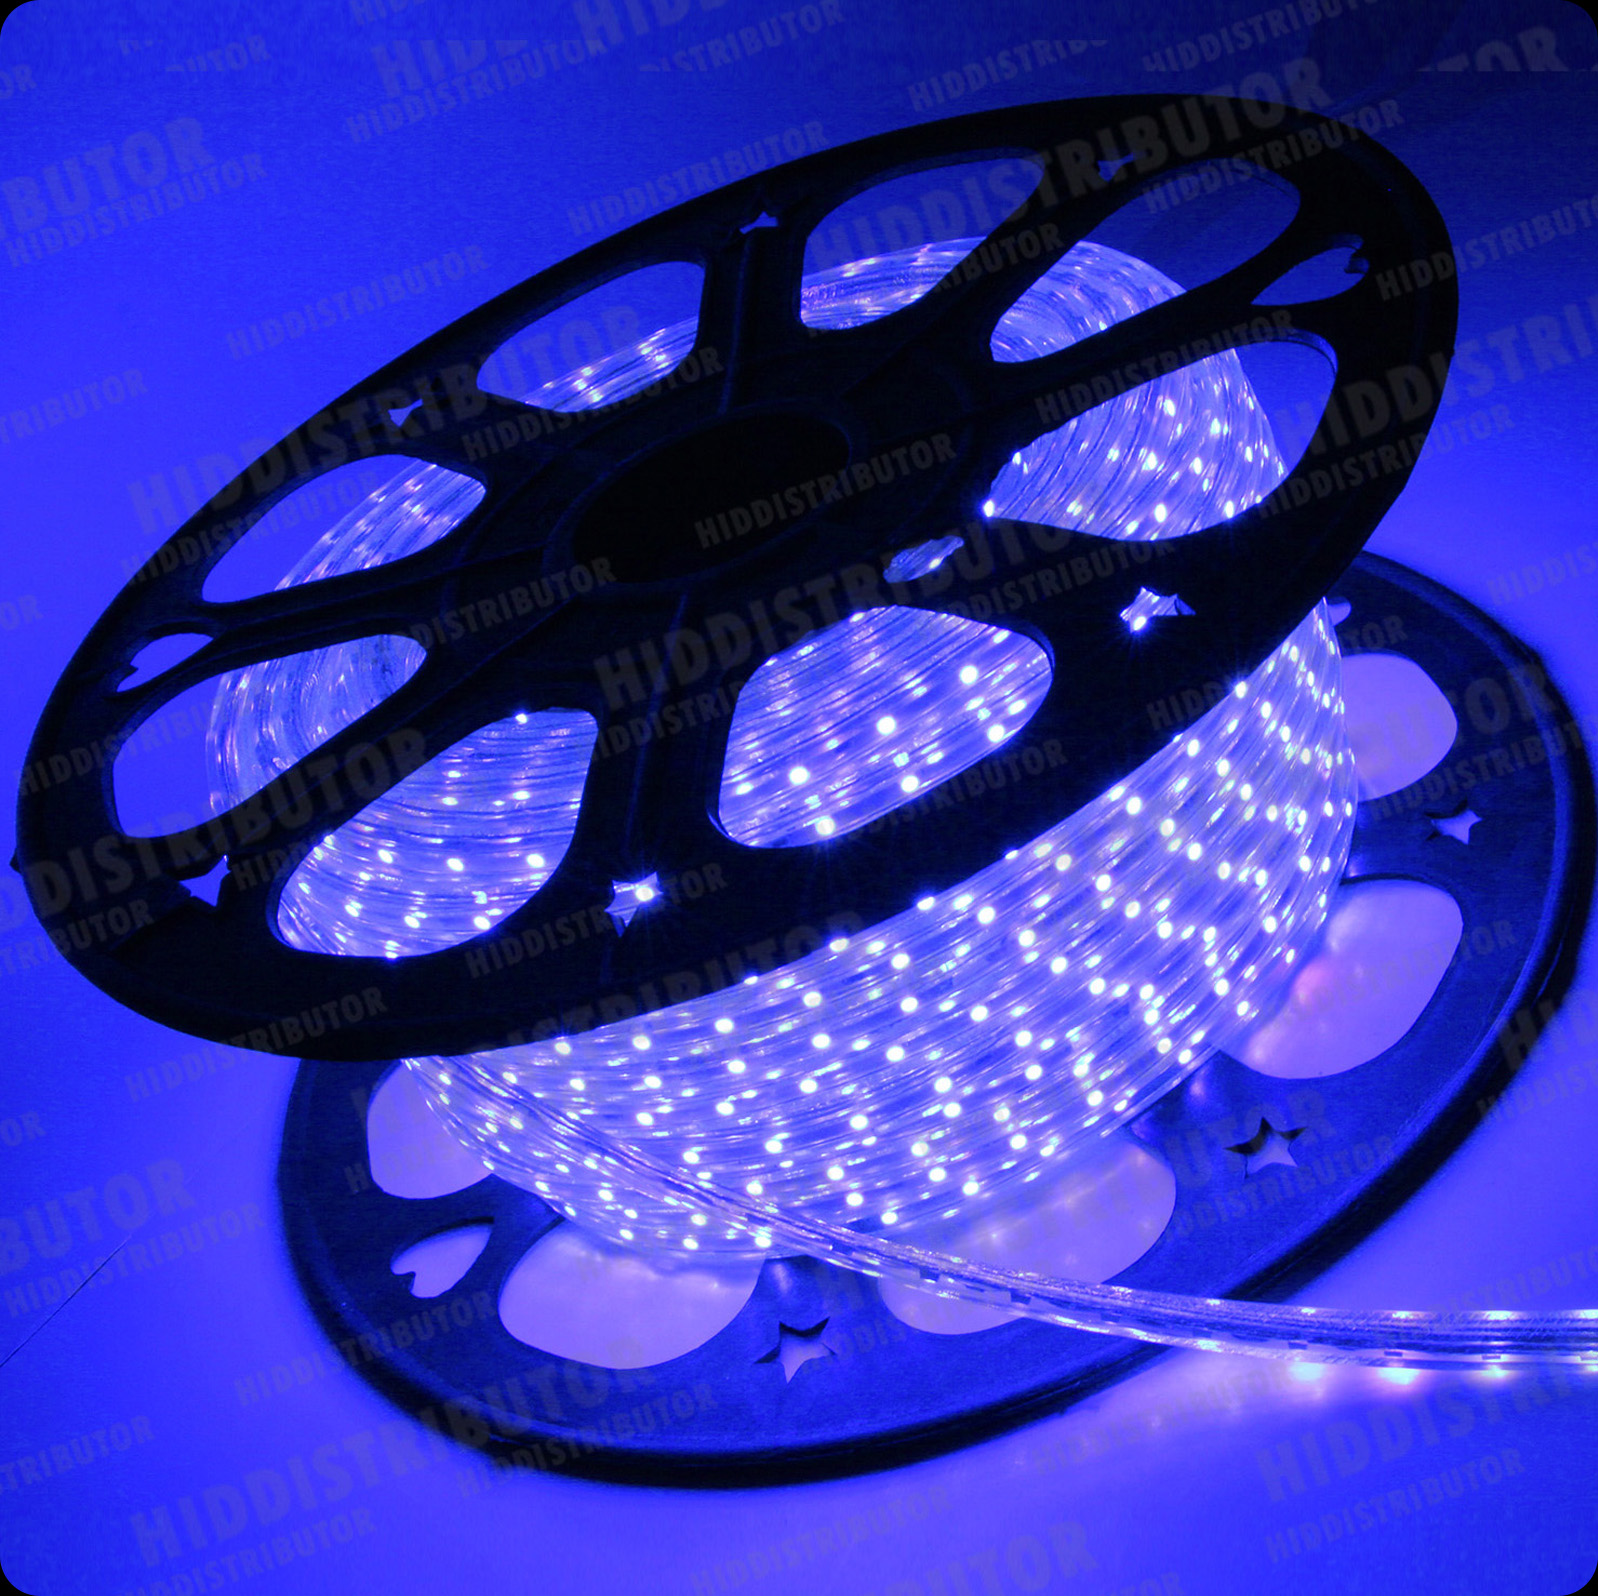 Blue 110V 120V Power Flexible Flat 3528SMD LED Strip Rope Light Cut 120 Feet eBay